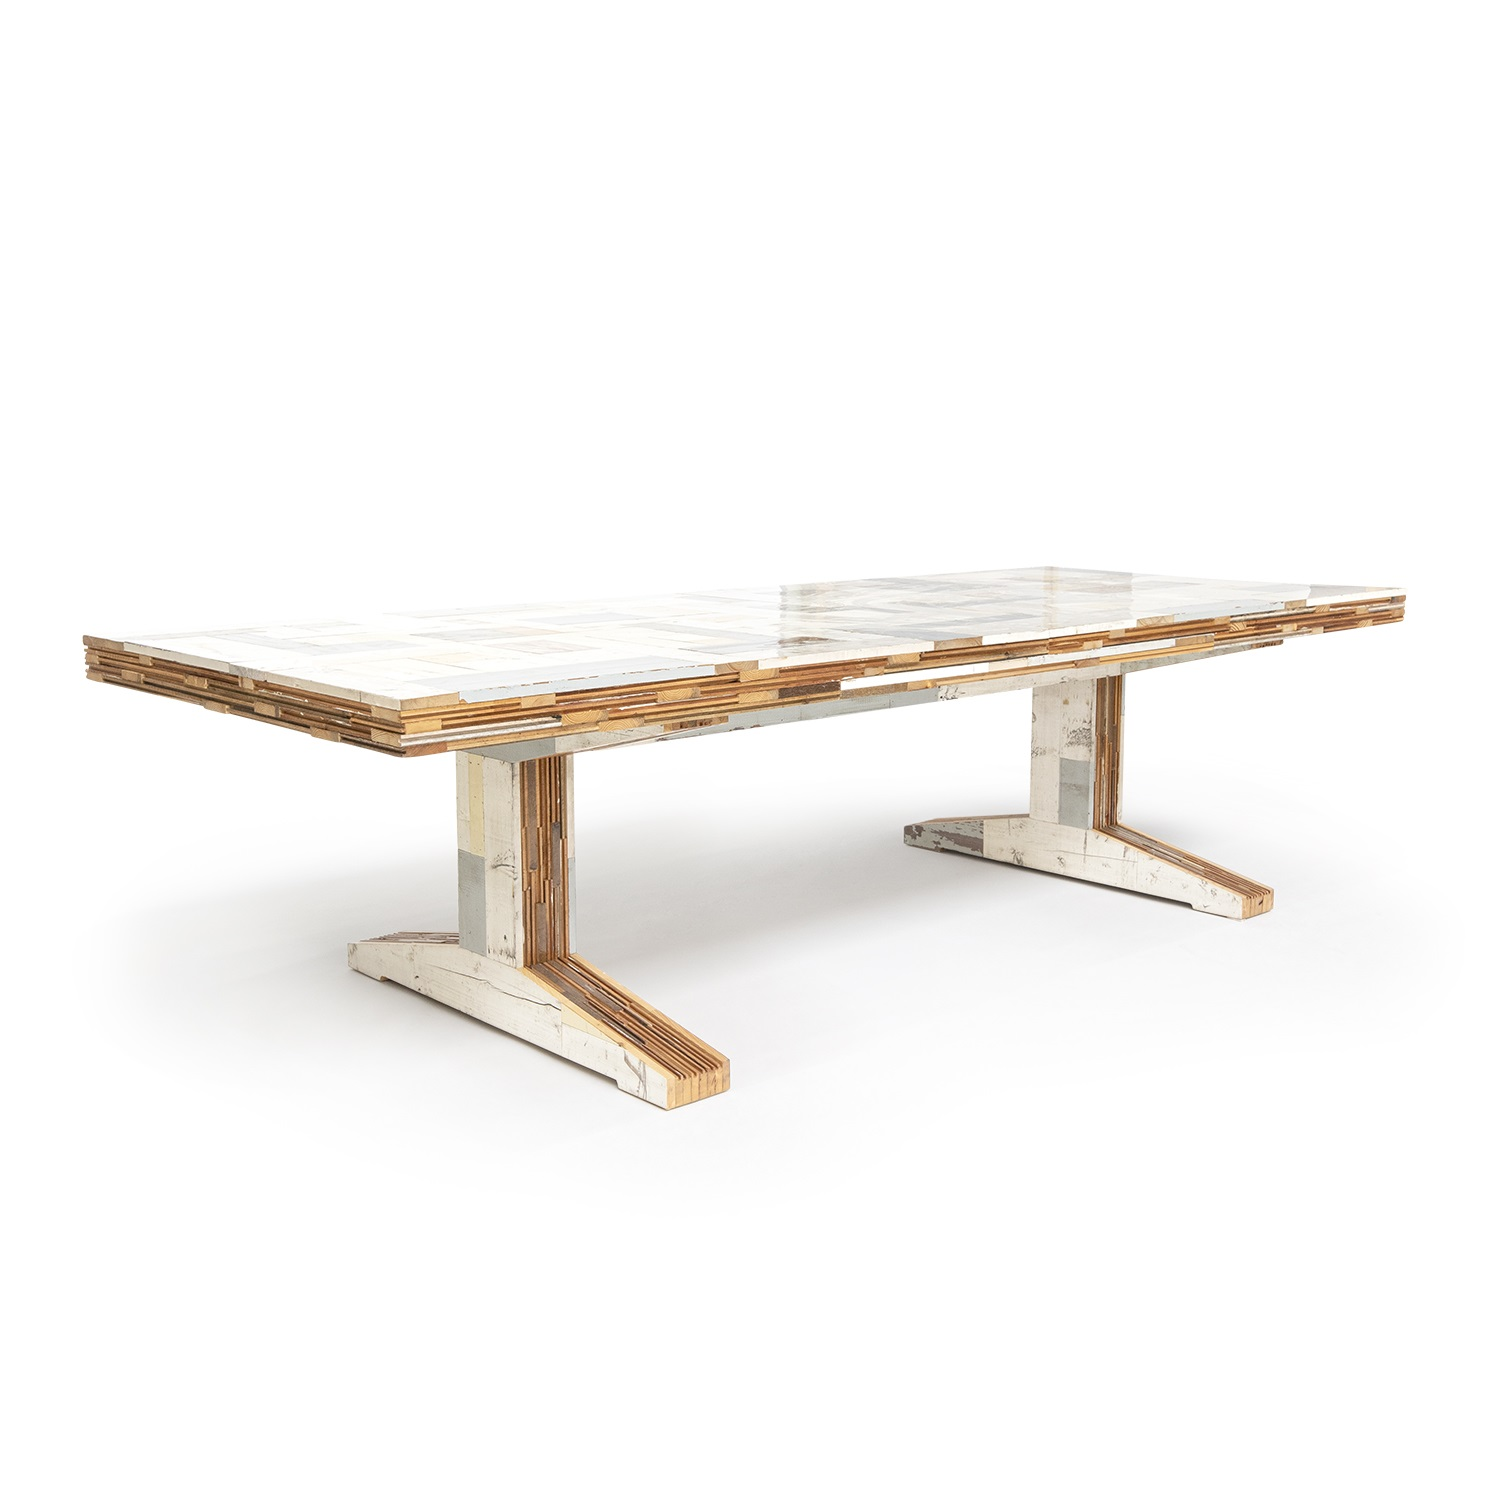 02_ADI_Foldable_Table_perspective01 VK